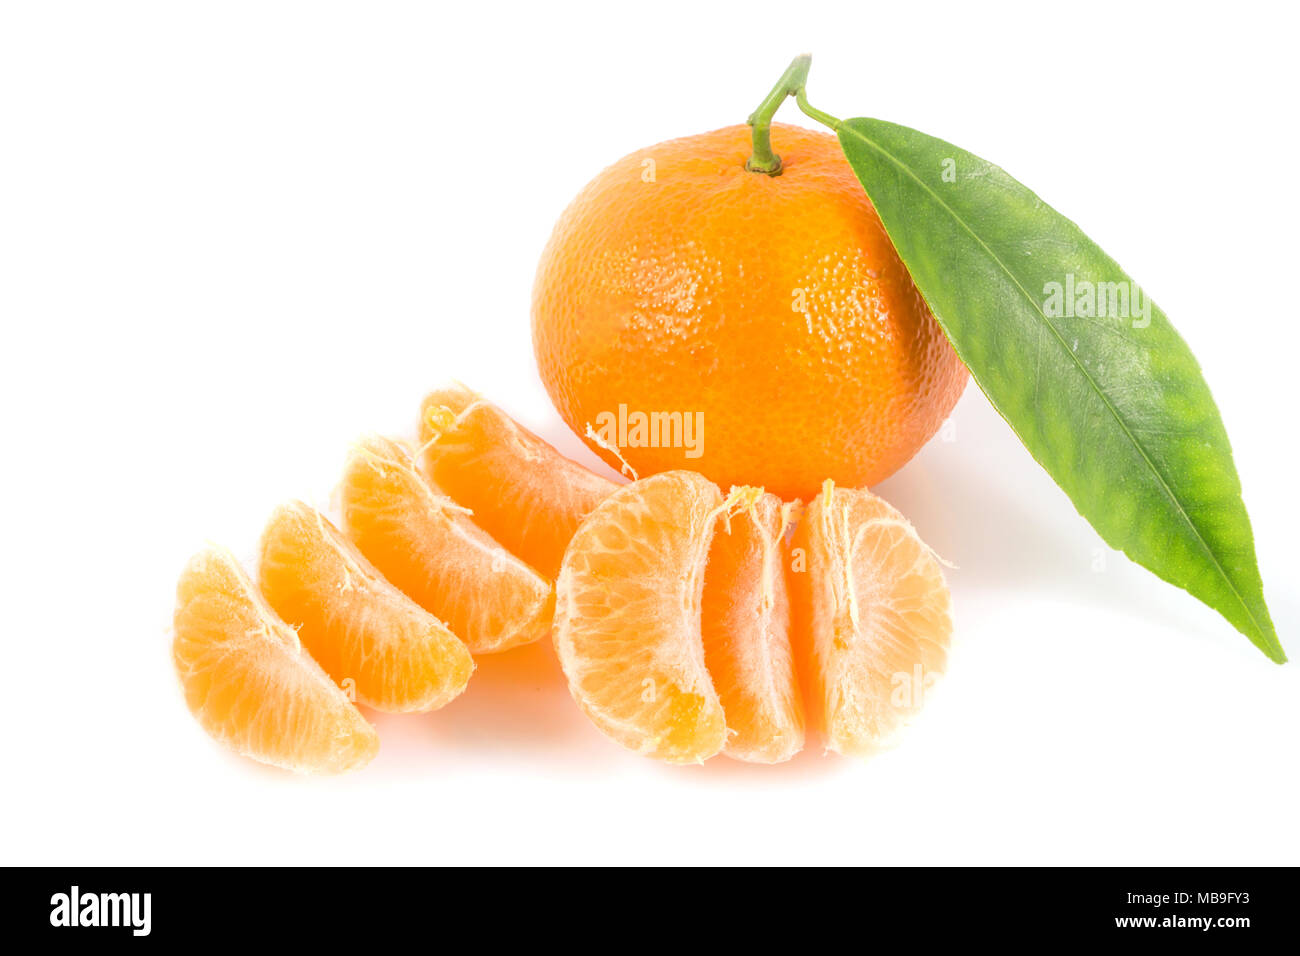 Fresh tangerines oranges with leaves isolated on white background, Healthy fruits, with a clipping path Top view. Stock Photo